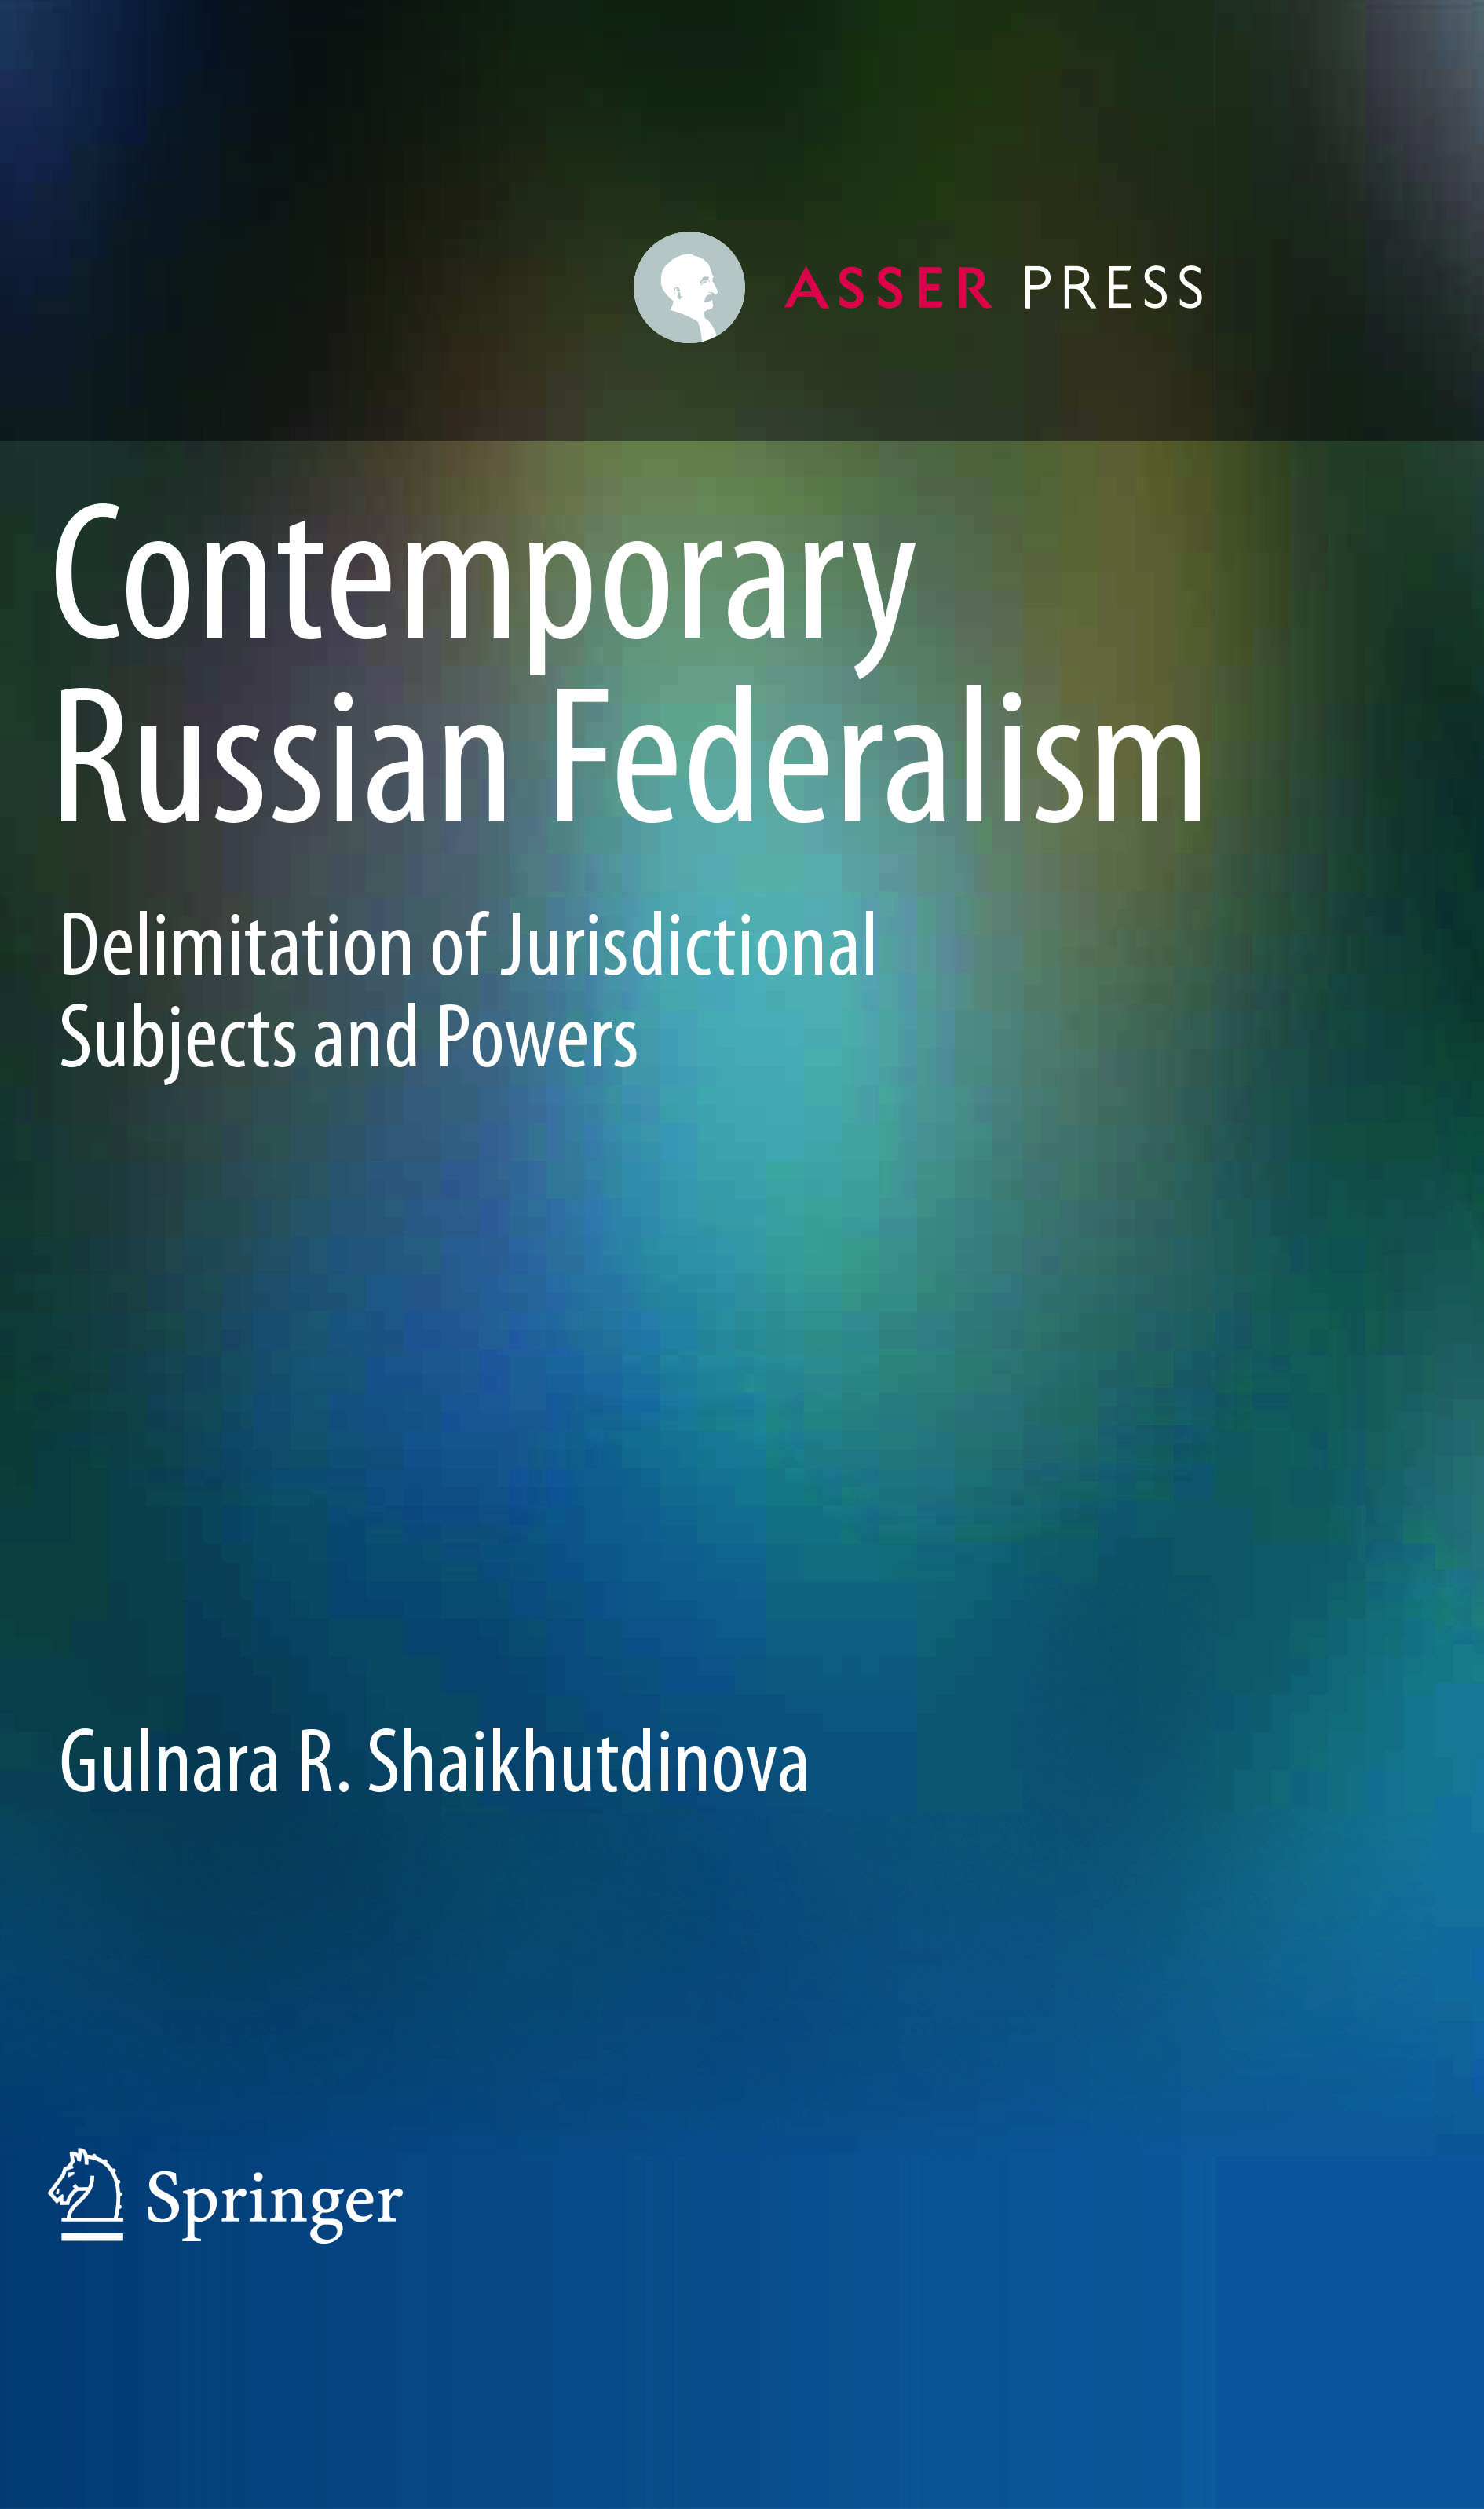 Contemporary Russian Federalism - Delimitation of Jurisdictional Subjects and Powers